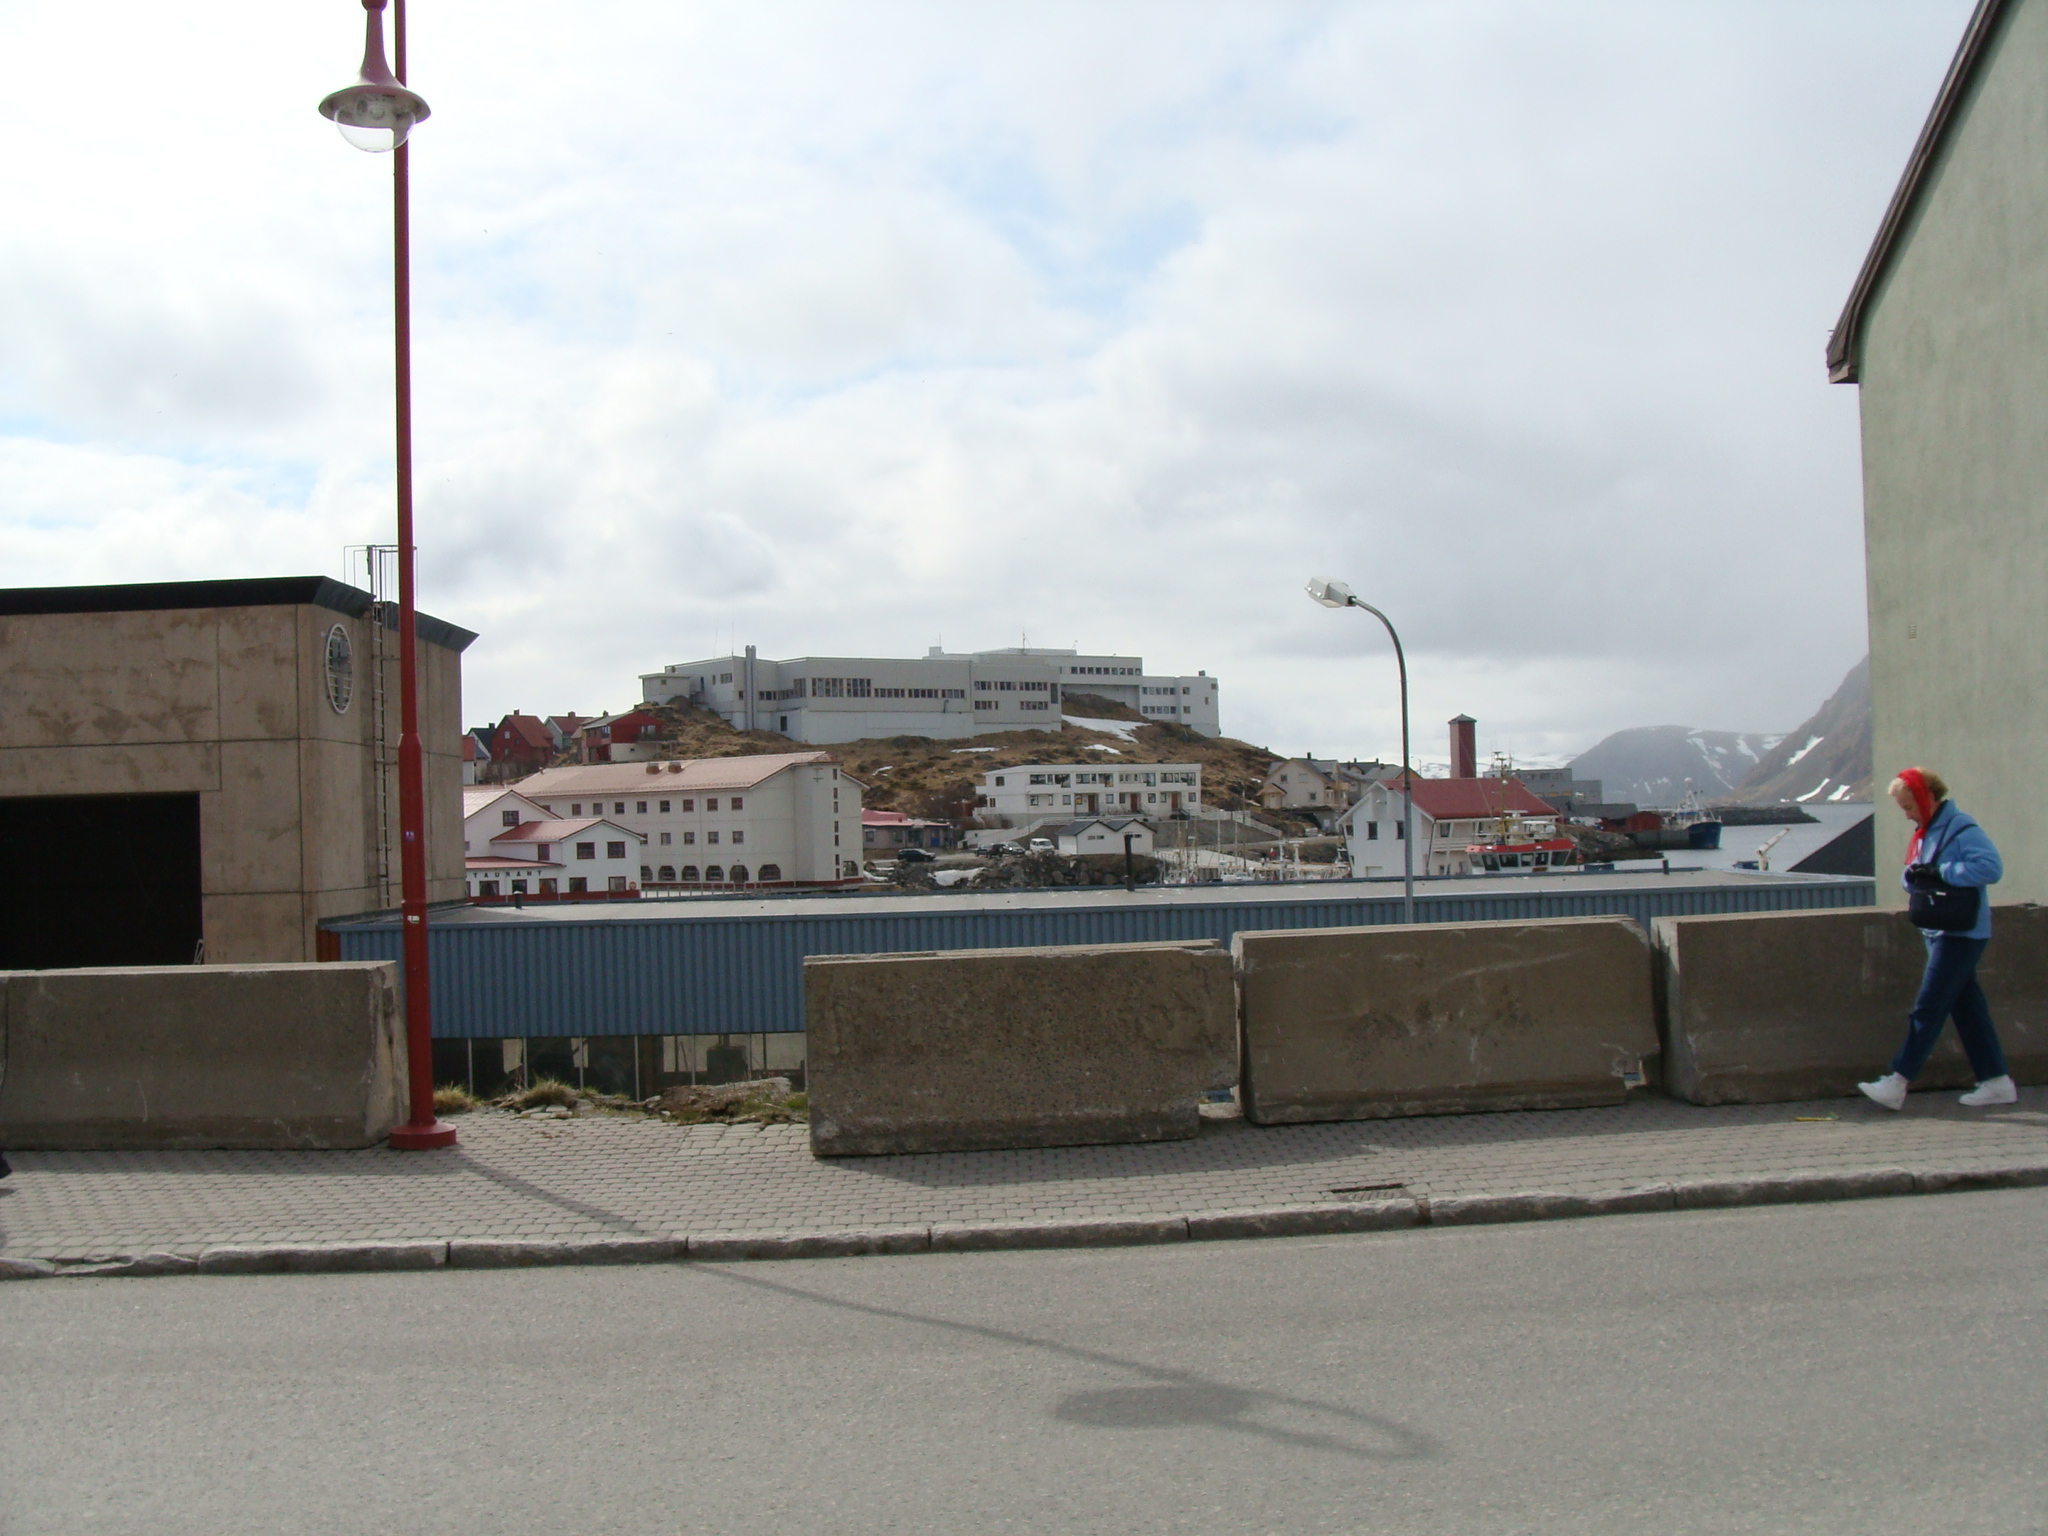 [PH] Honingsborg, Norway, 20080526